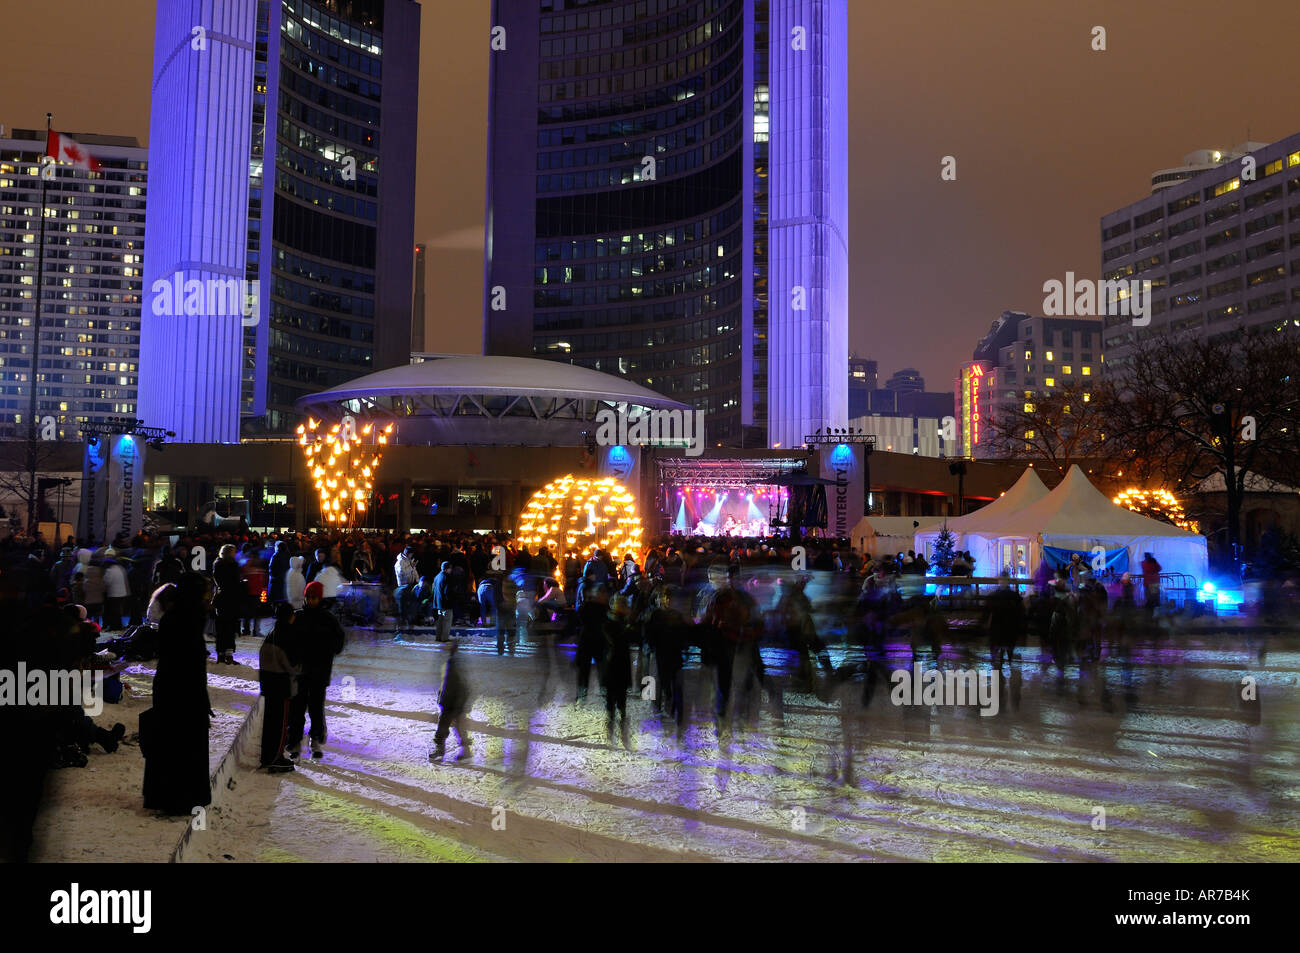 Skaters on ice rink at Toronto City Hall during Wintercity Nights of Fire and Weakerthans rock musicians stage show - Stock Image